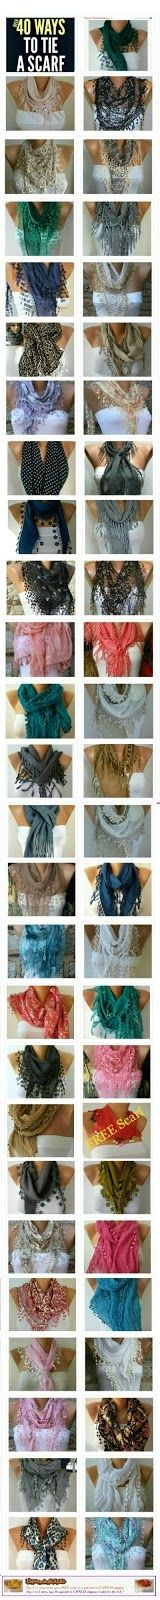 Share on Pinterest Share Share on Facebook Share Share on TwitterTweet Share on Google Plus Share Share on LinkedIn Share Share on Digg Share -Scarf on ETSY Share on Pinterest Share Share on Facebook Share Share on TwitterTweet Share on Google Plus Share Share on LinkedIn Share Share on Digg Share